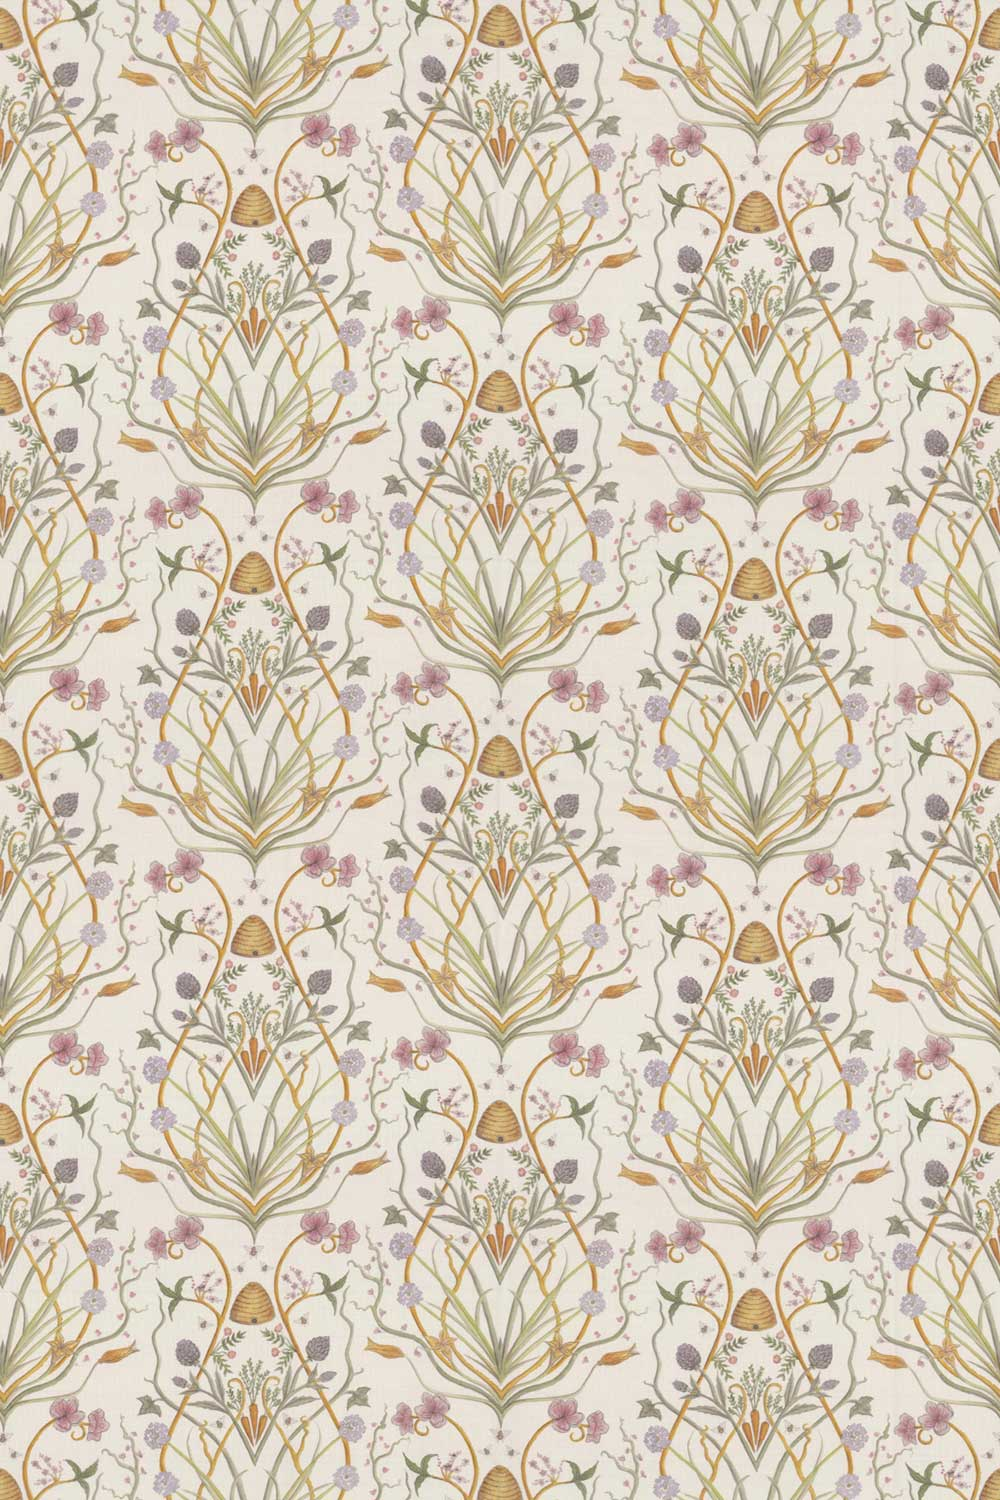 Potagerie Fabric - Cream - by The Chateau by Angel Strawbridge